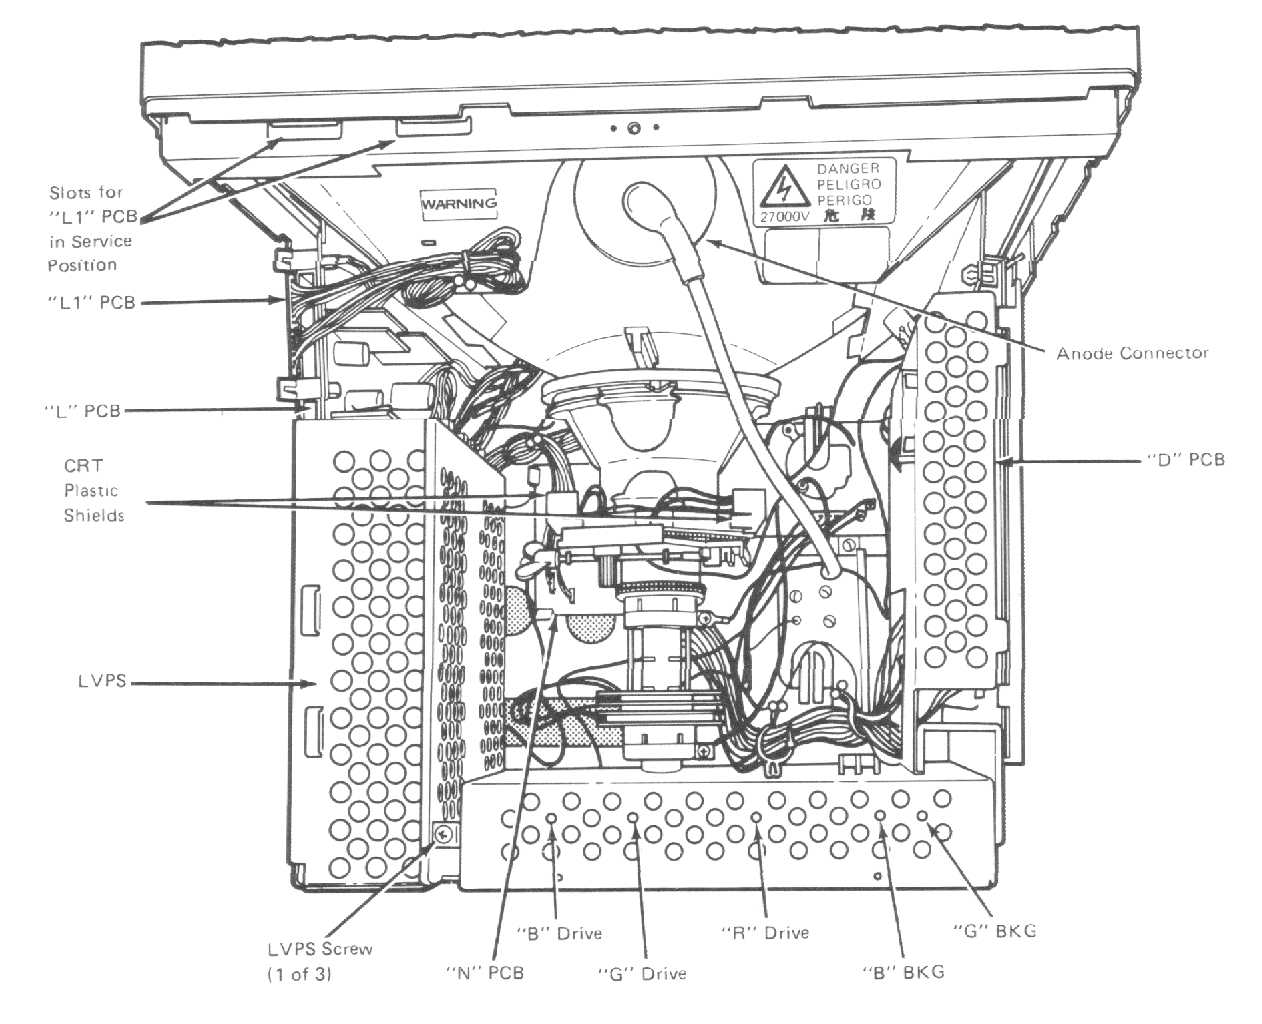 5081 Model 19 Display Maintenance Information Crt Monitor Diagram Figure 3 Top View